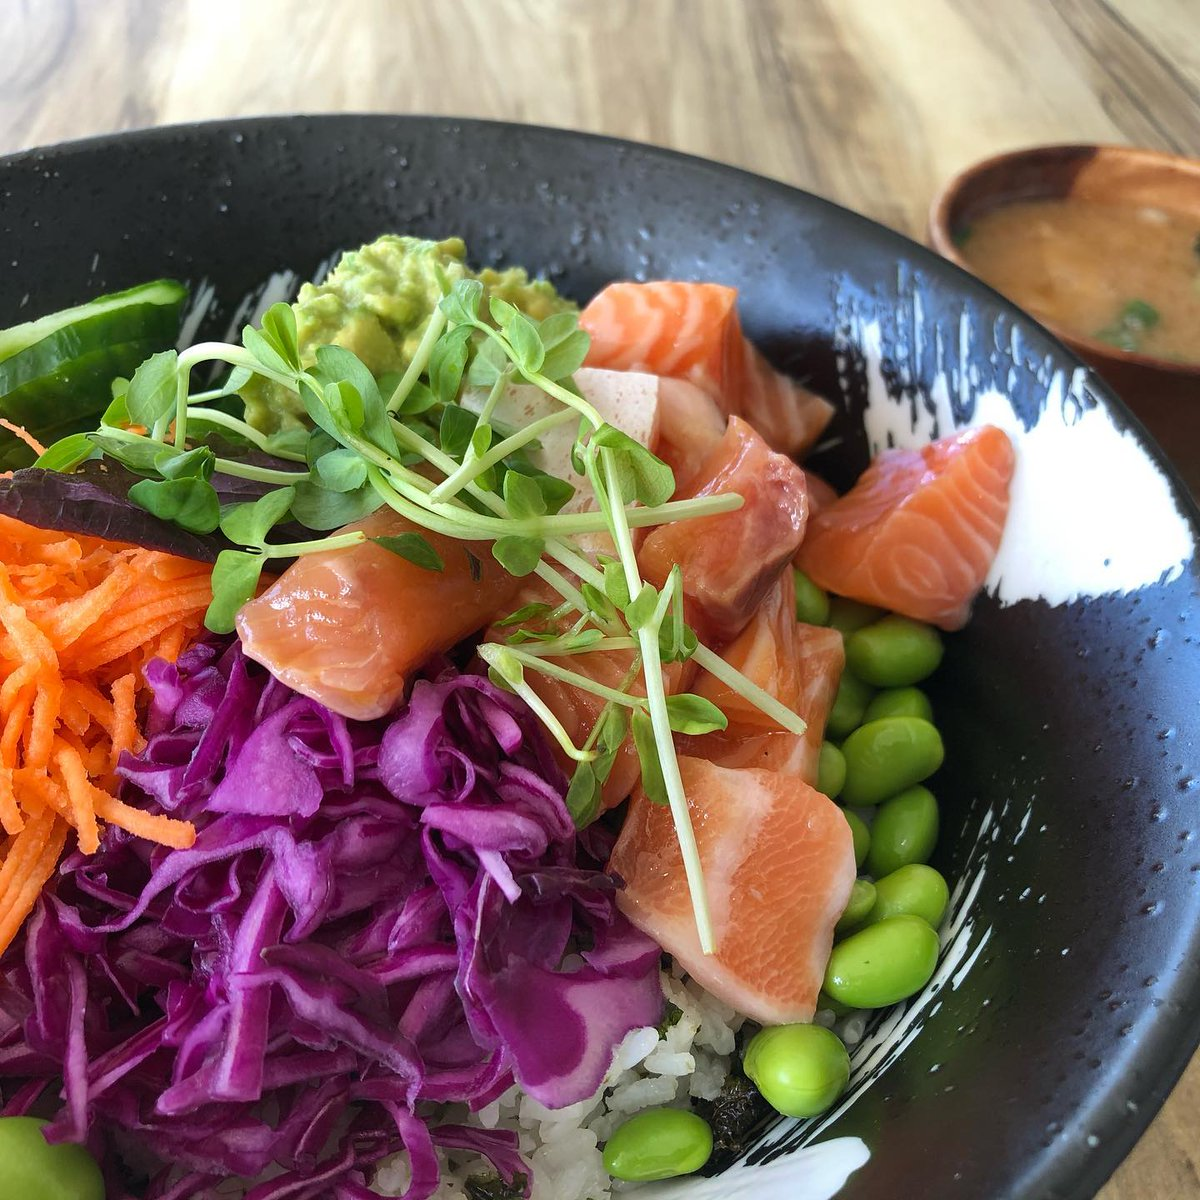 Decided to turn right instead of my usual left during my regular walking route and ended up getting a #pokebowl #sydneyeats pic.twitter.com/mWTKe9rOIW